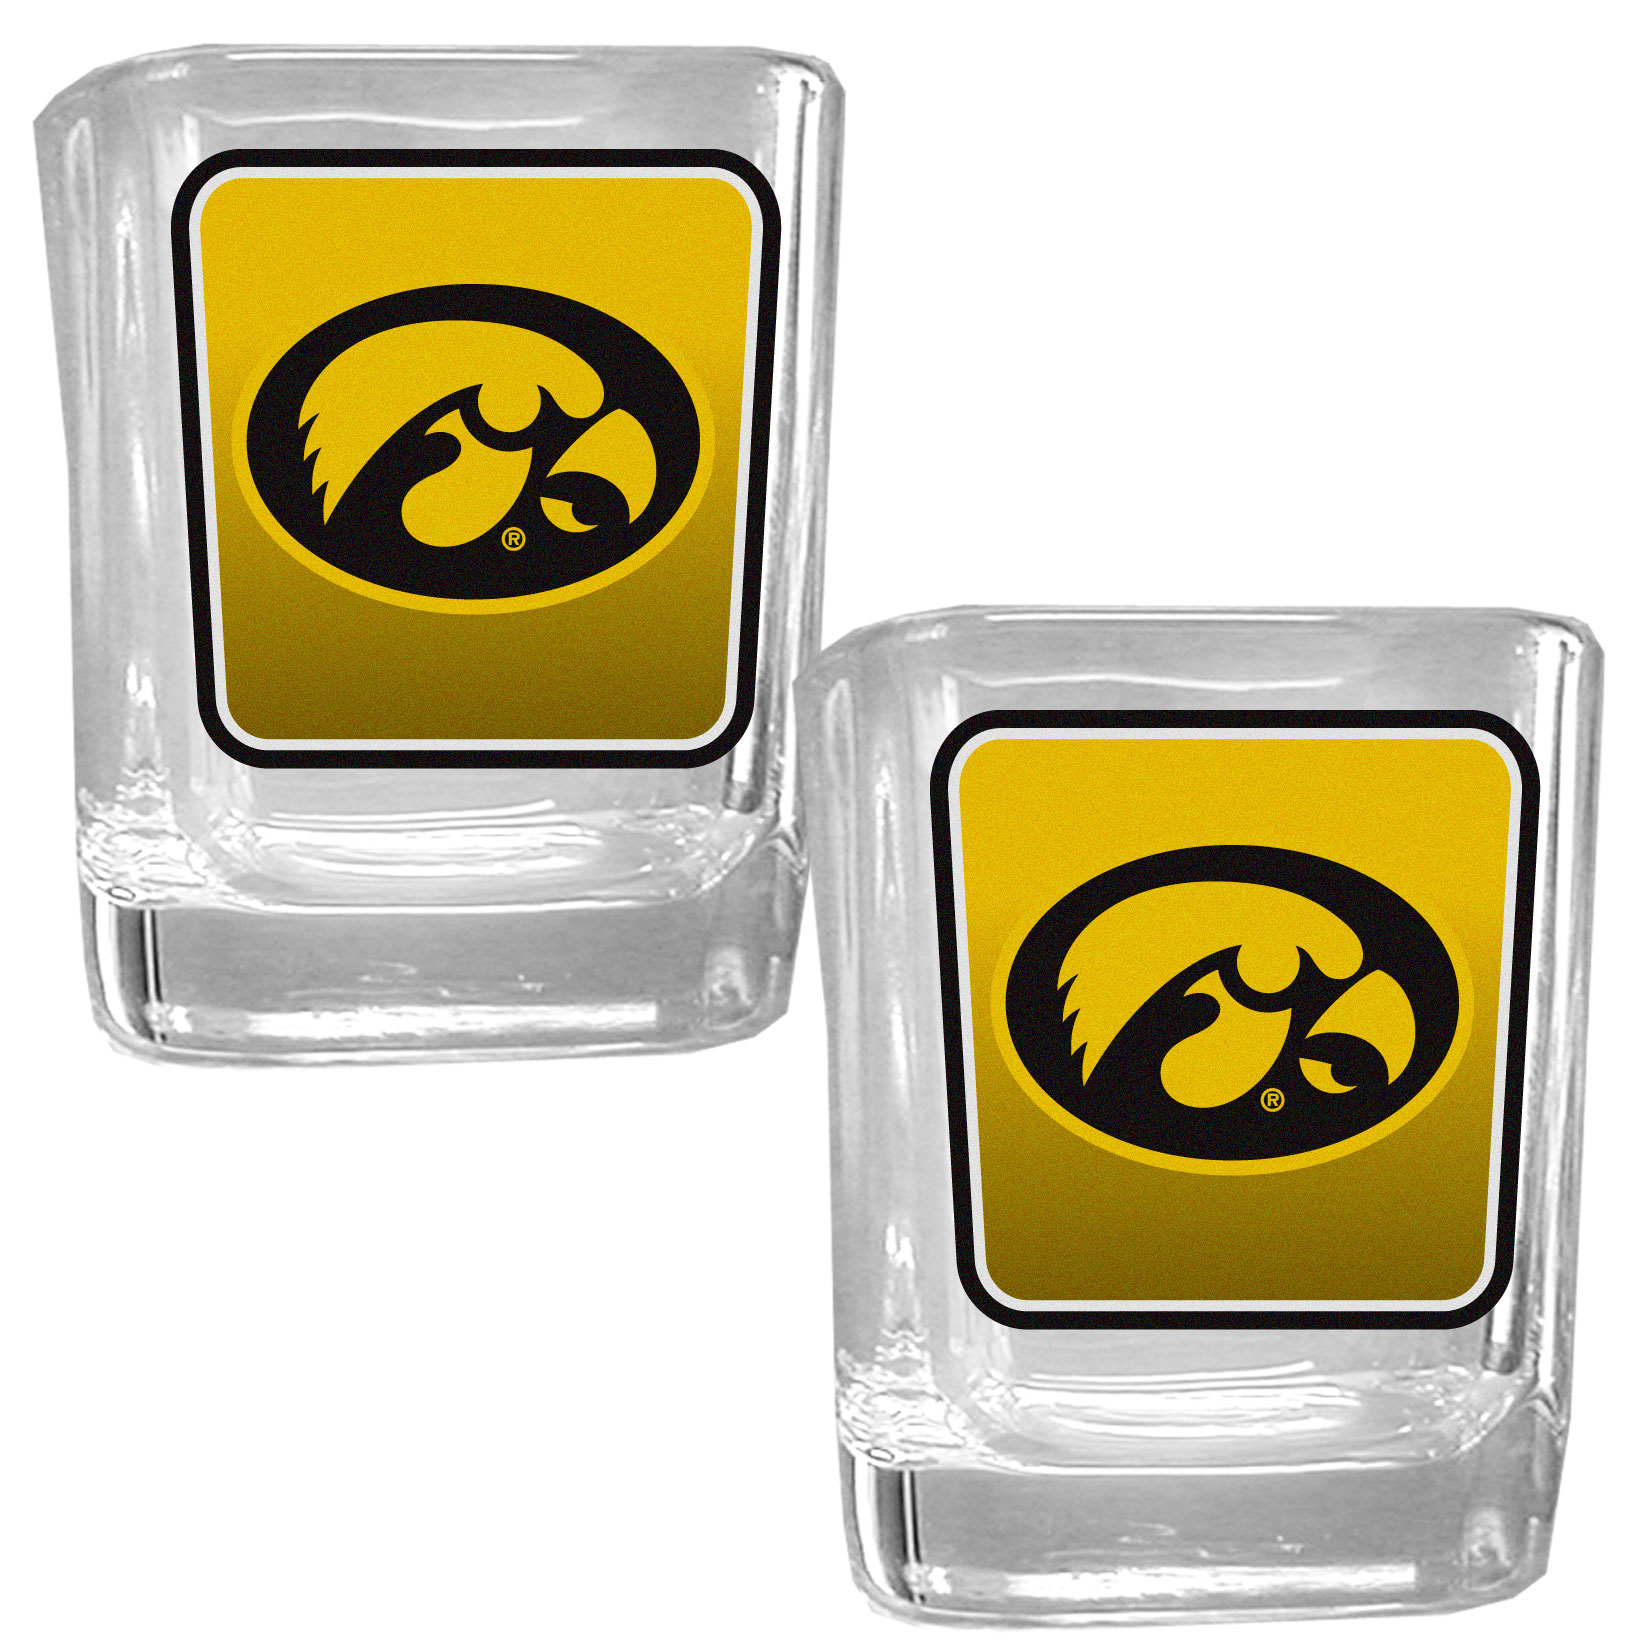 Iowa Hawkeyes Square Glass Shot Glass Set - Our glass shot glasses are perfect for collectors or any game day event. The 2 ounce glasses feature bright, vidid digital Iowa Hawkeyes graphics. Comes in a set of 2.